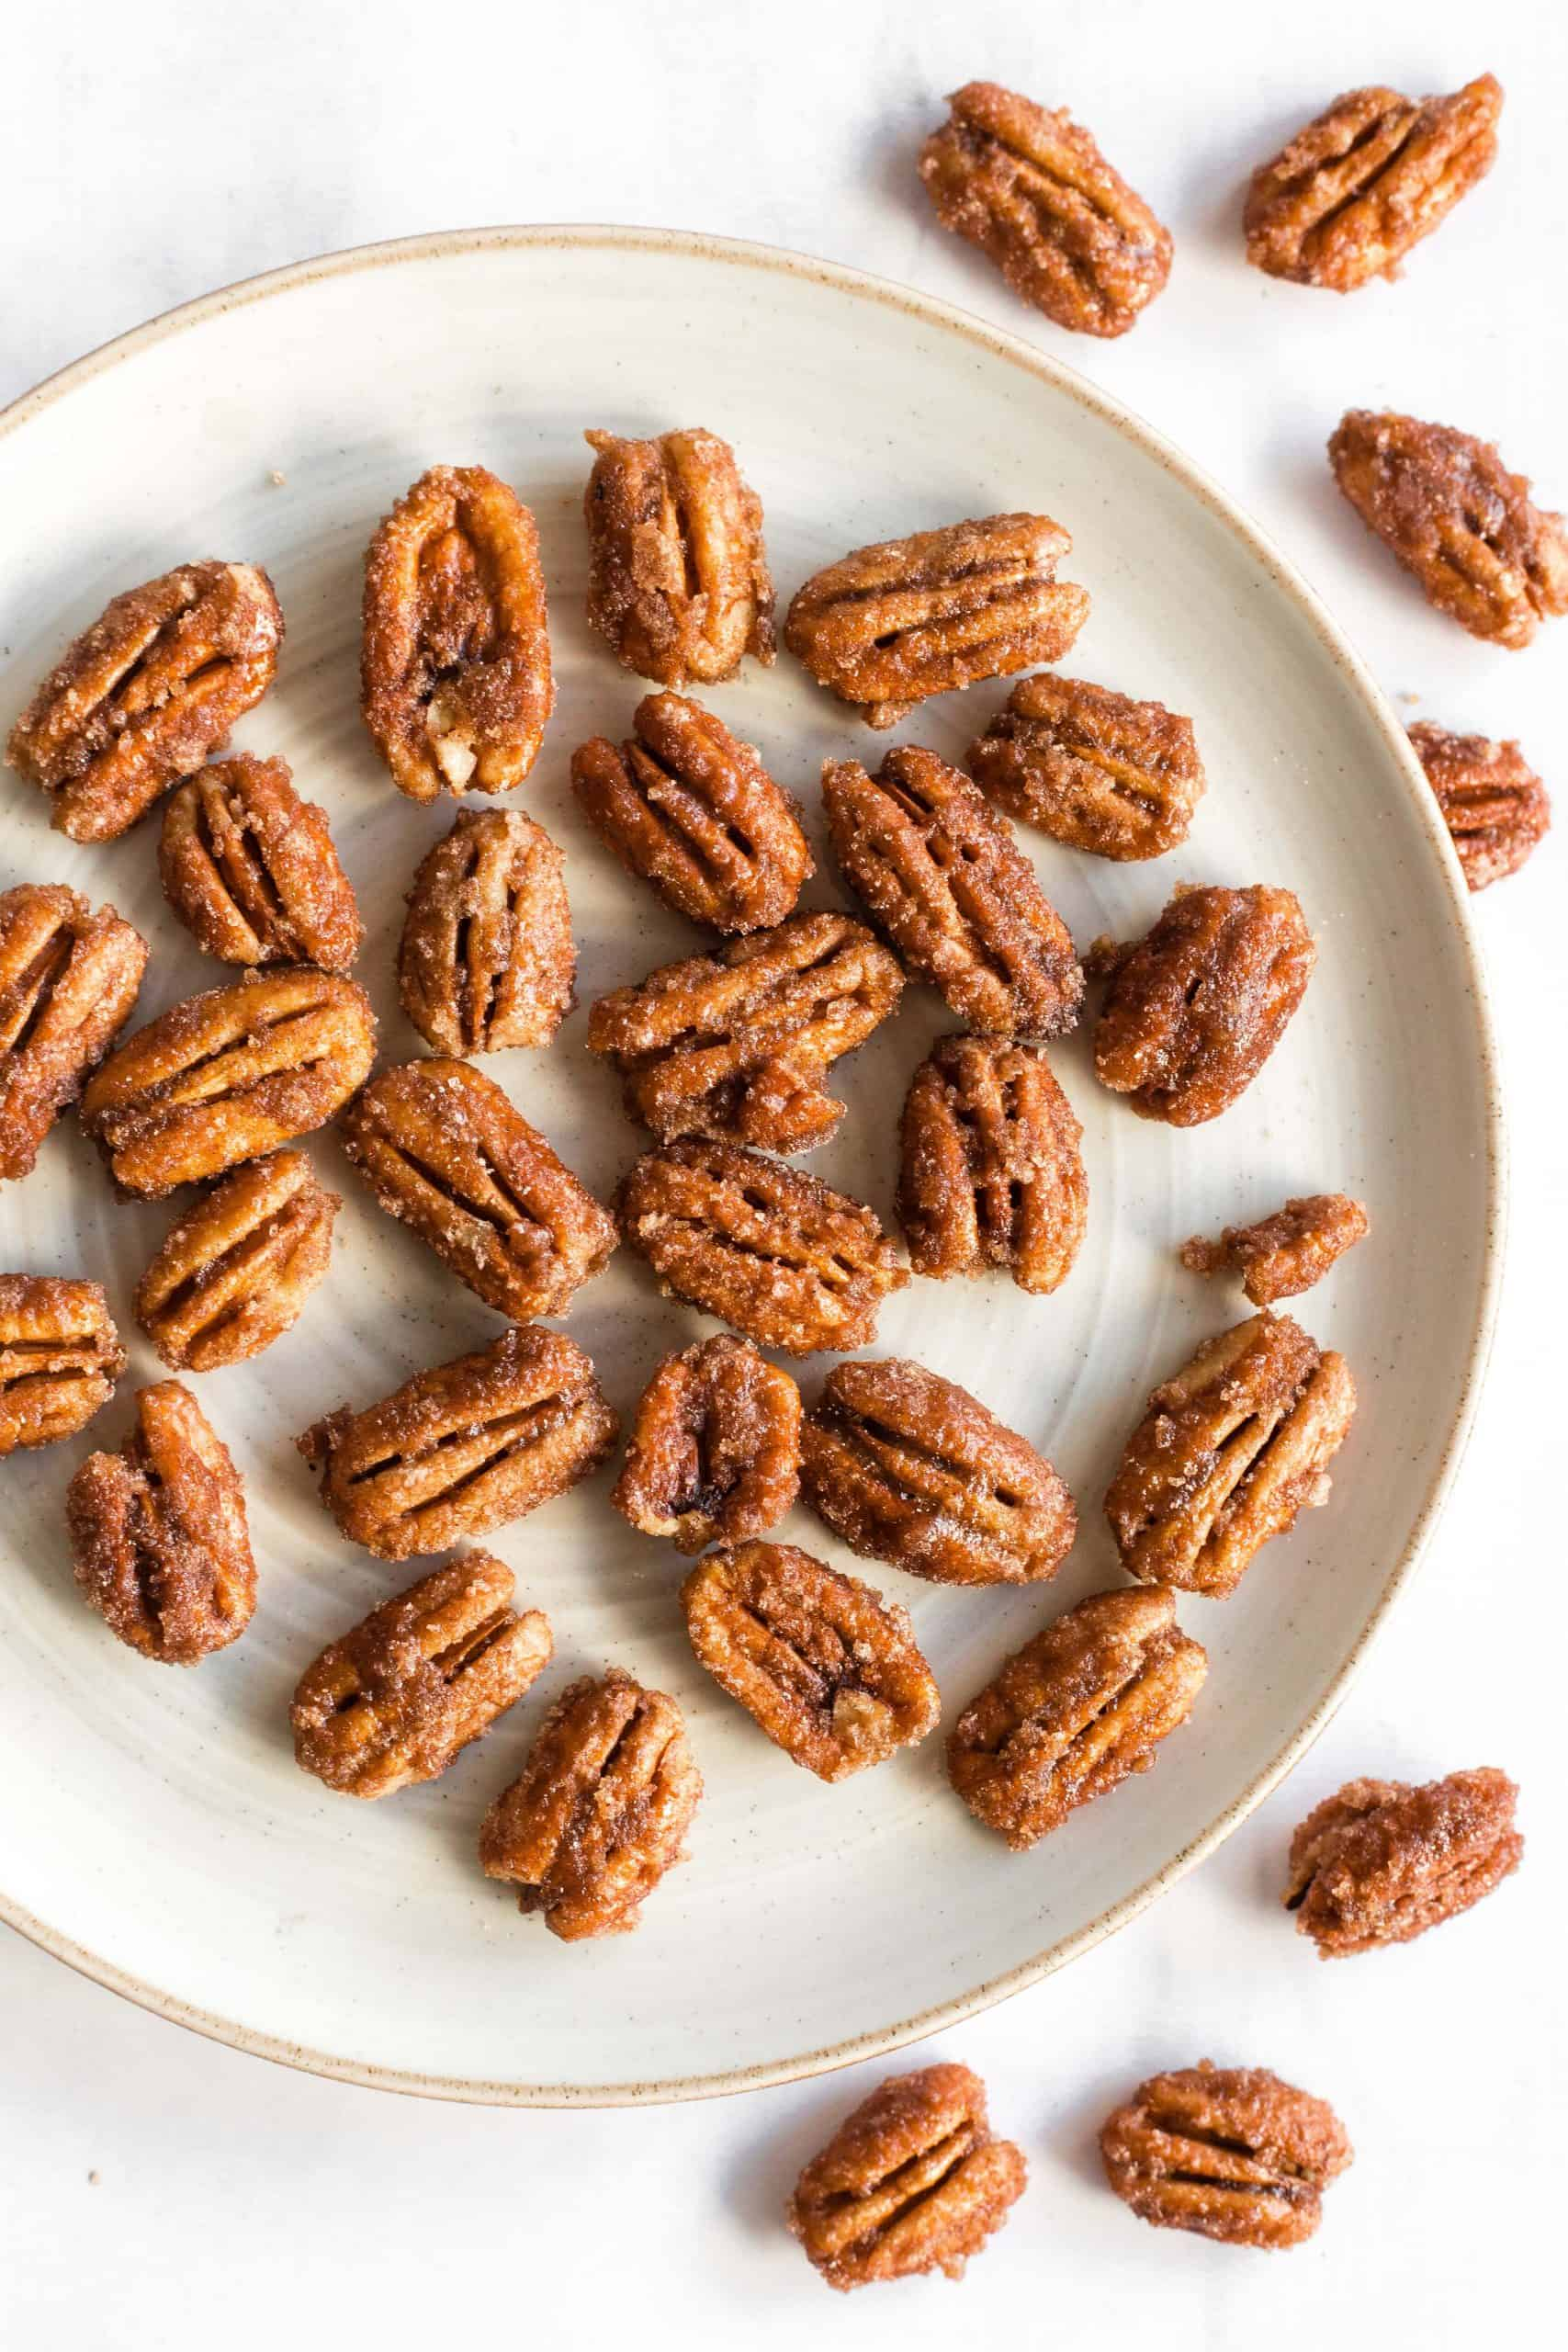 A plate full of pecans.